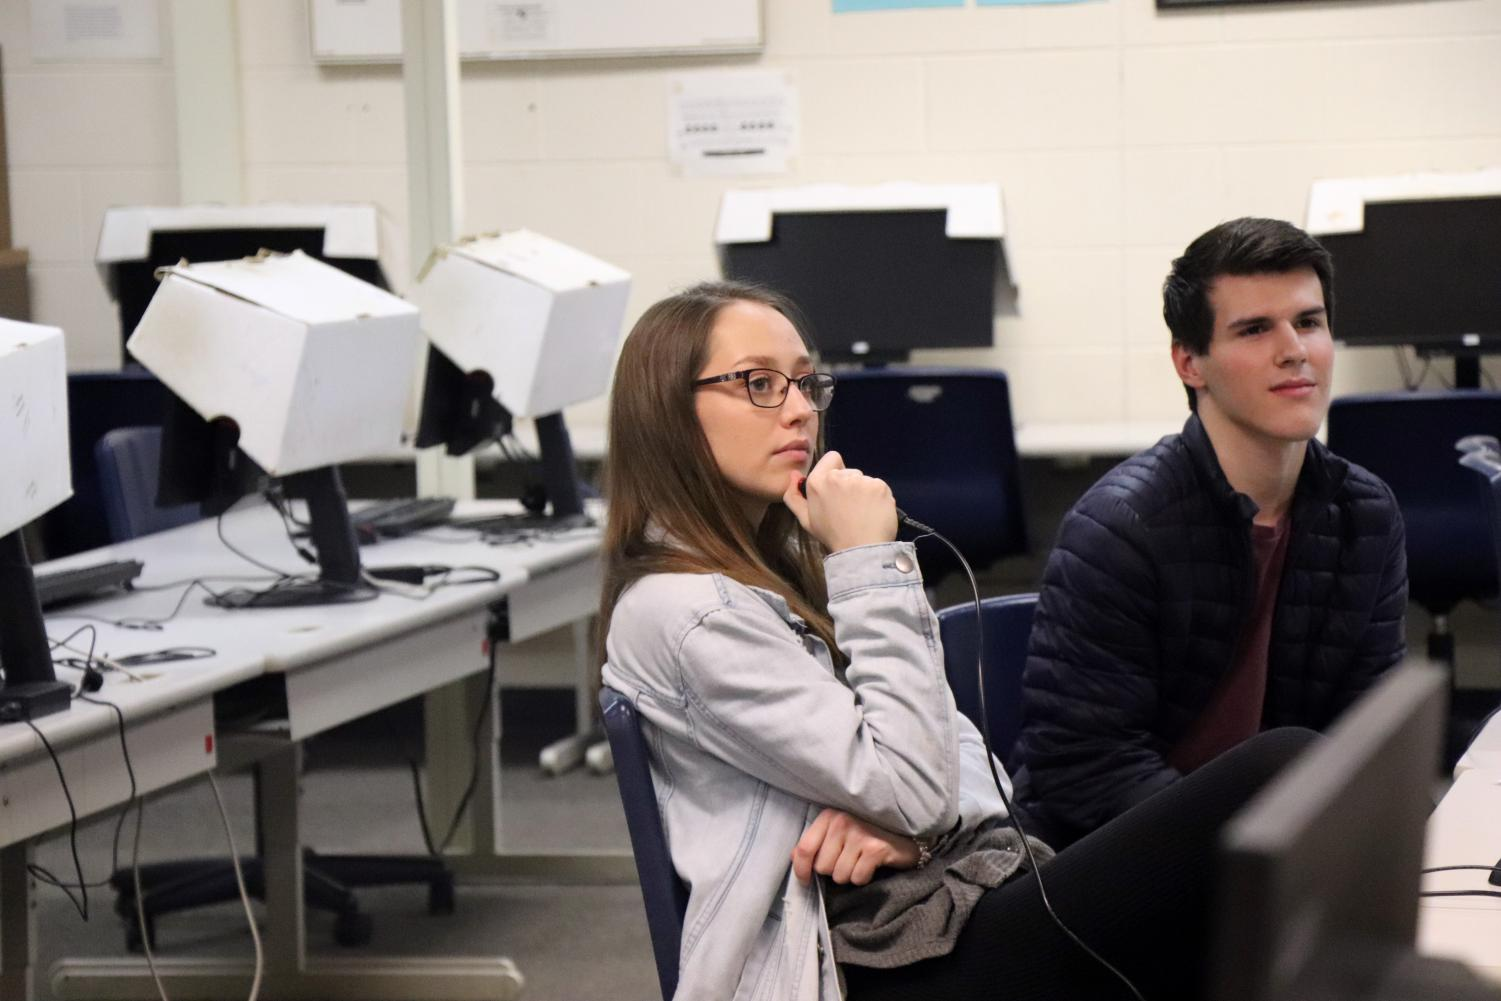 Prepping for their upcoming competition, senior Amelia West, waits to buzz in her answer during their practice. Students in teacher Bruce Burwitz's classes were given the chance to be on the 'Lifesmarts' team which will compete in Florida.